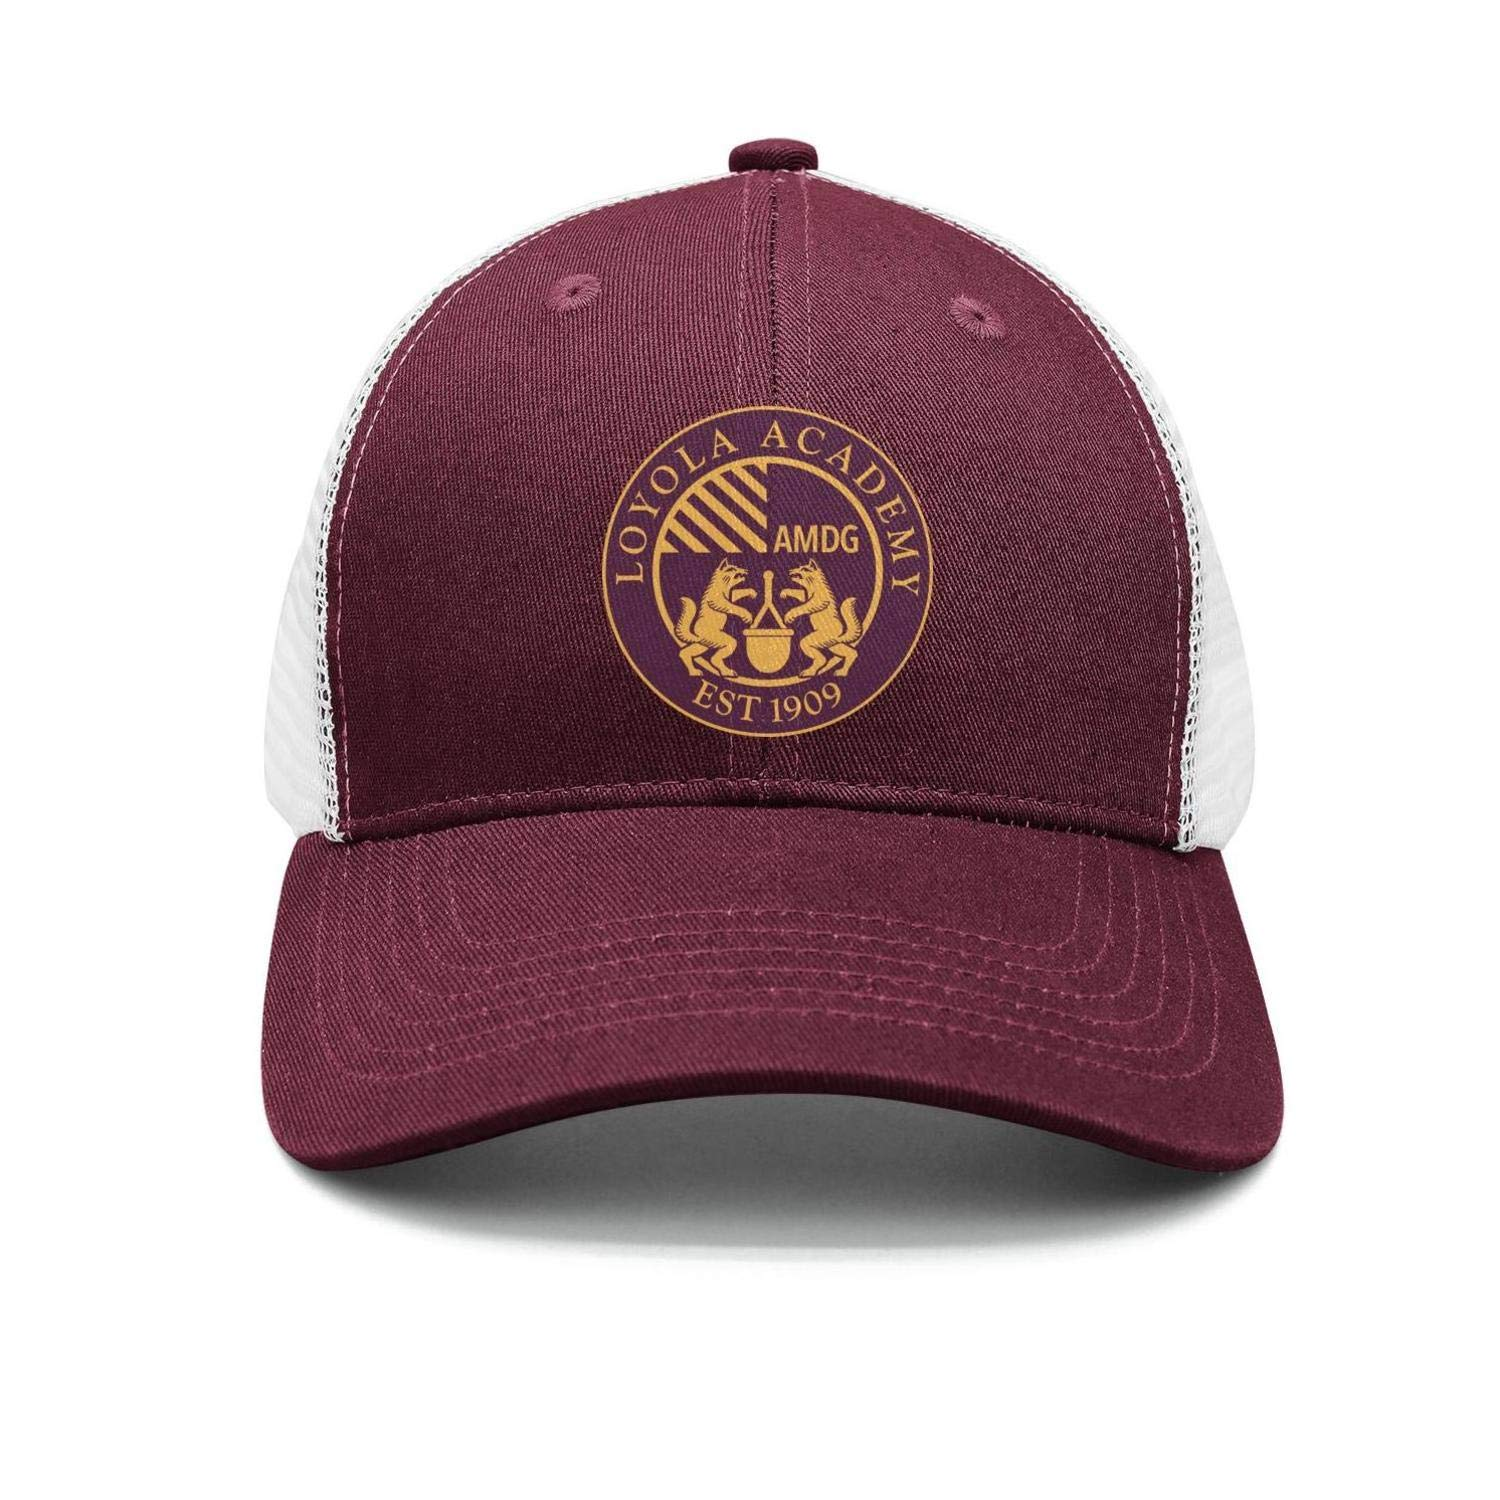 Unisex Loyola-University-of-Chicago Baseball Cap Men Women Classic Adjustable Hat